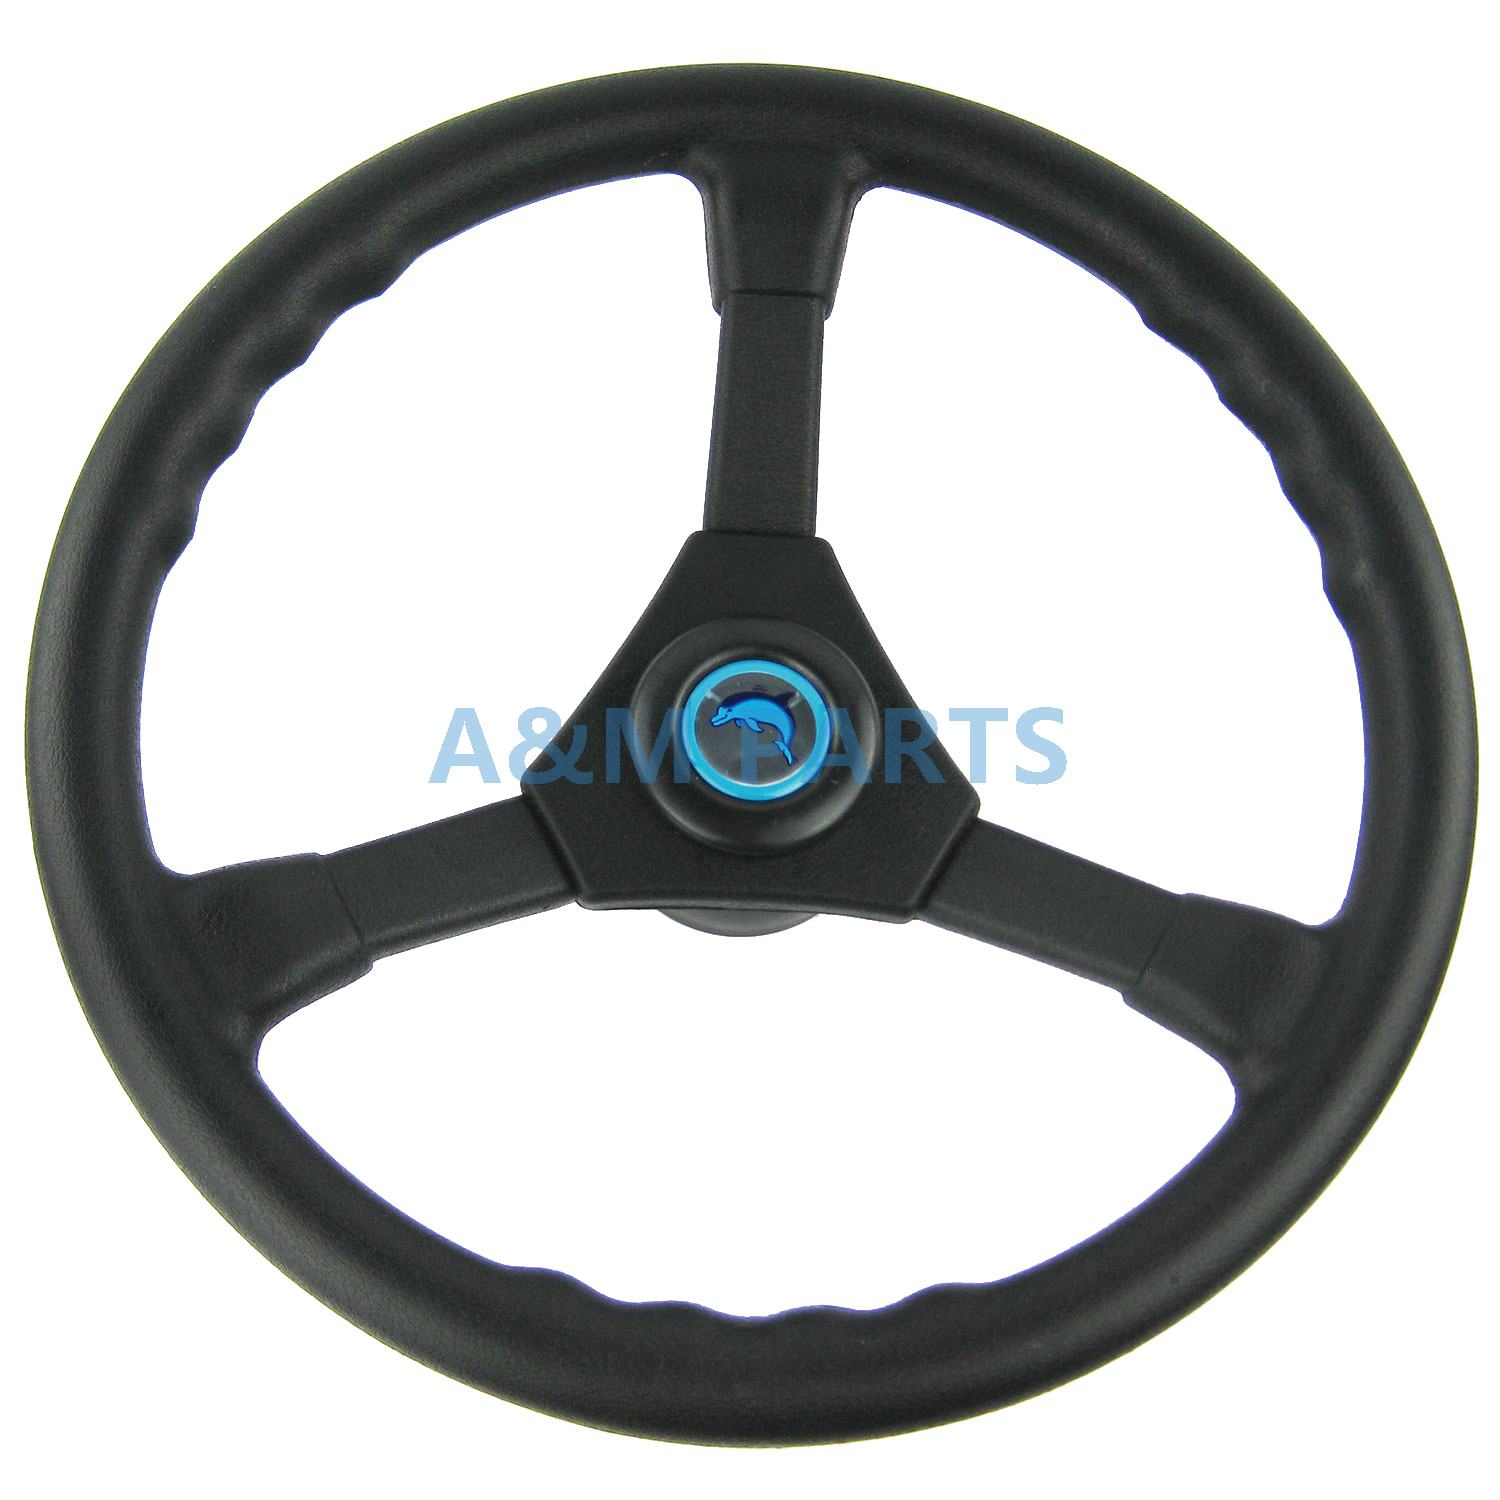 17FT Boat Rotary Steering System With Marine Outboard Steering Cable & Wheel Boat Controls & Steering Auto Parts and Vehicles